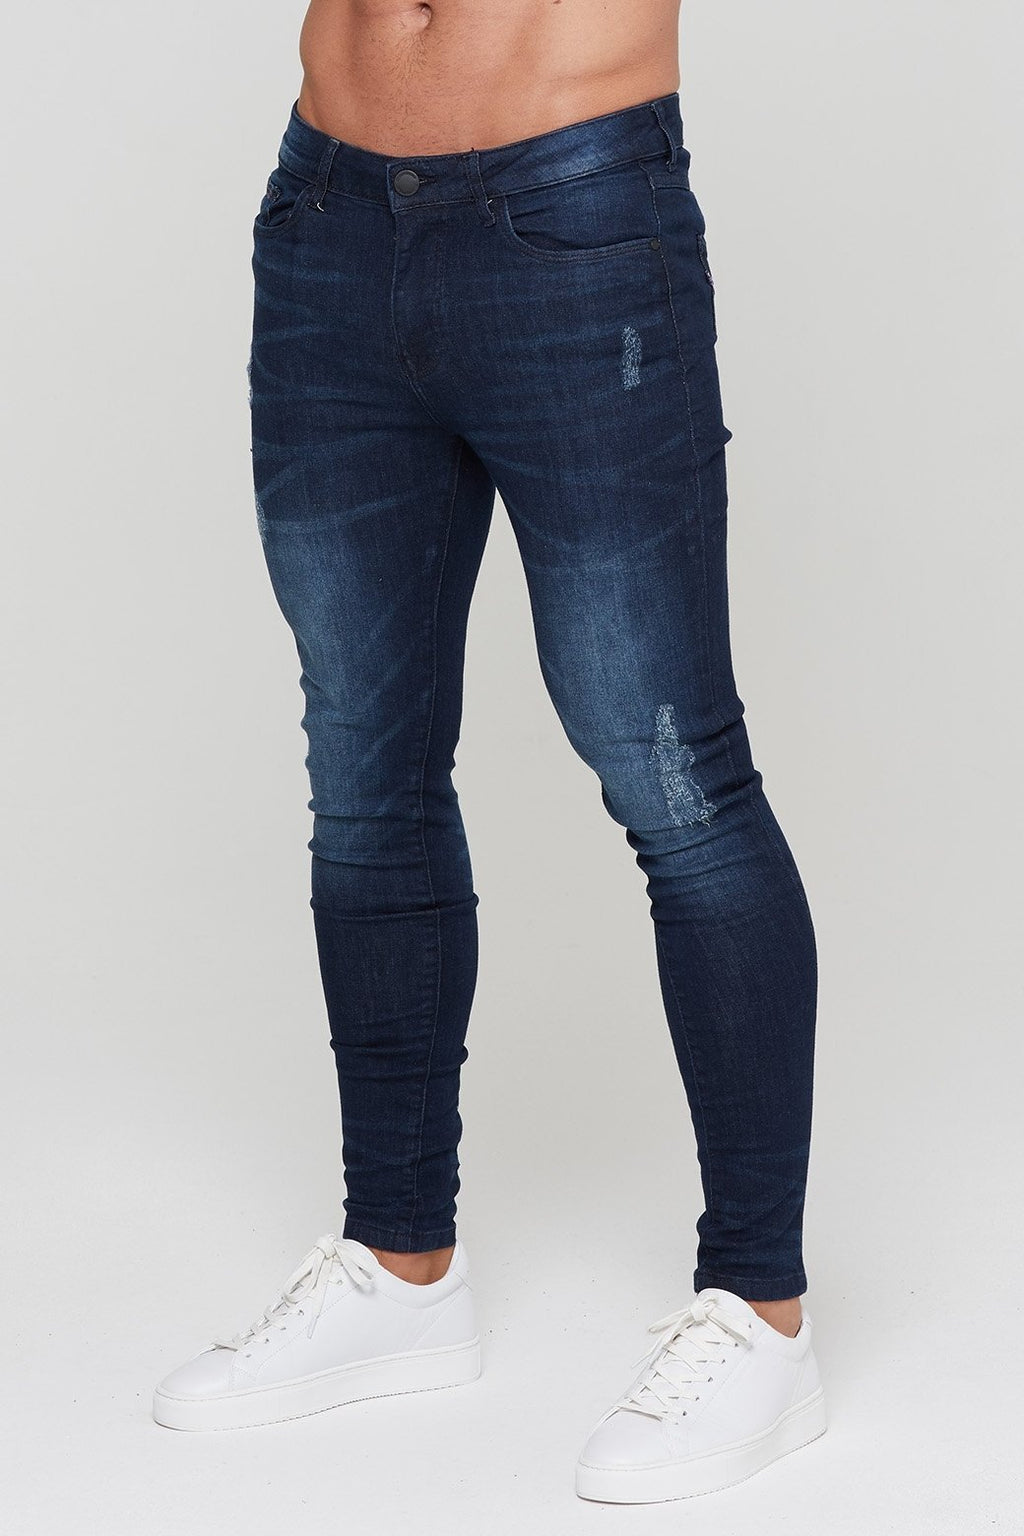 GOOD FOR NOTHING JEANS S-30 GOOD FOR NOTHING Fade Indigo Abrasion Denim